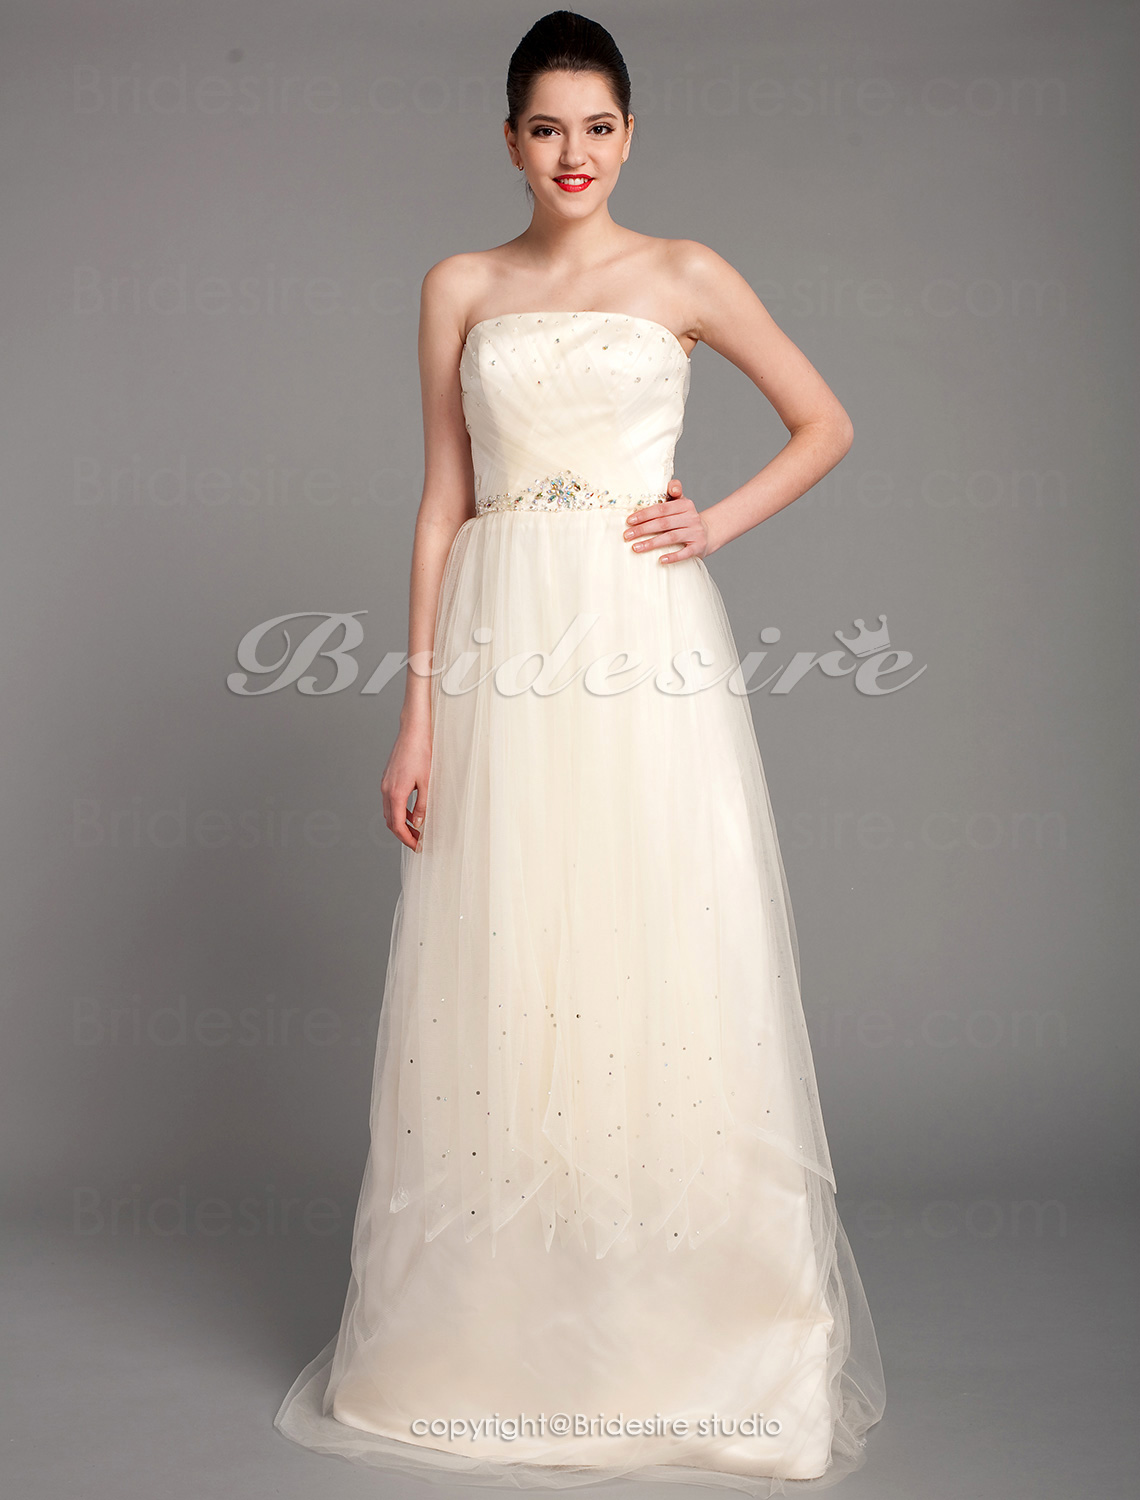 A-line Tulle Floor-length Strapless Evening Dress